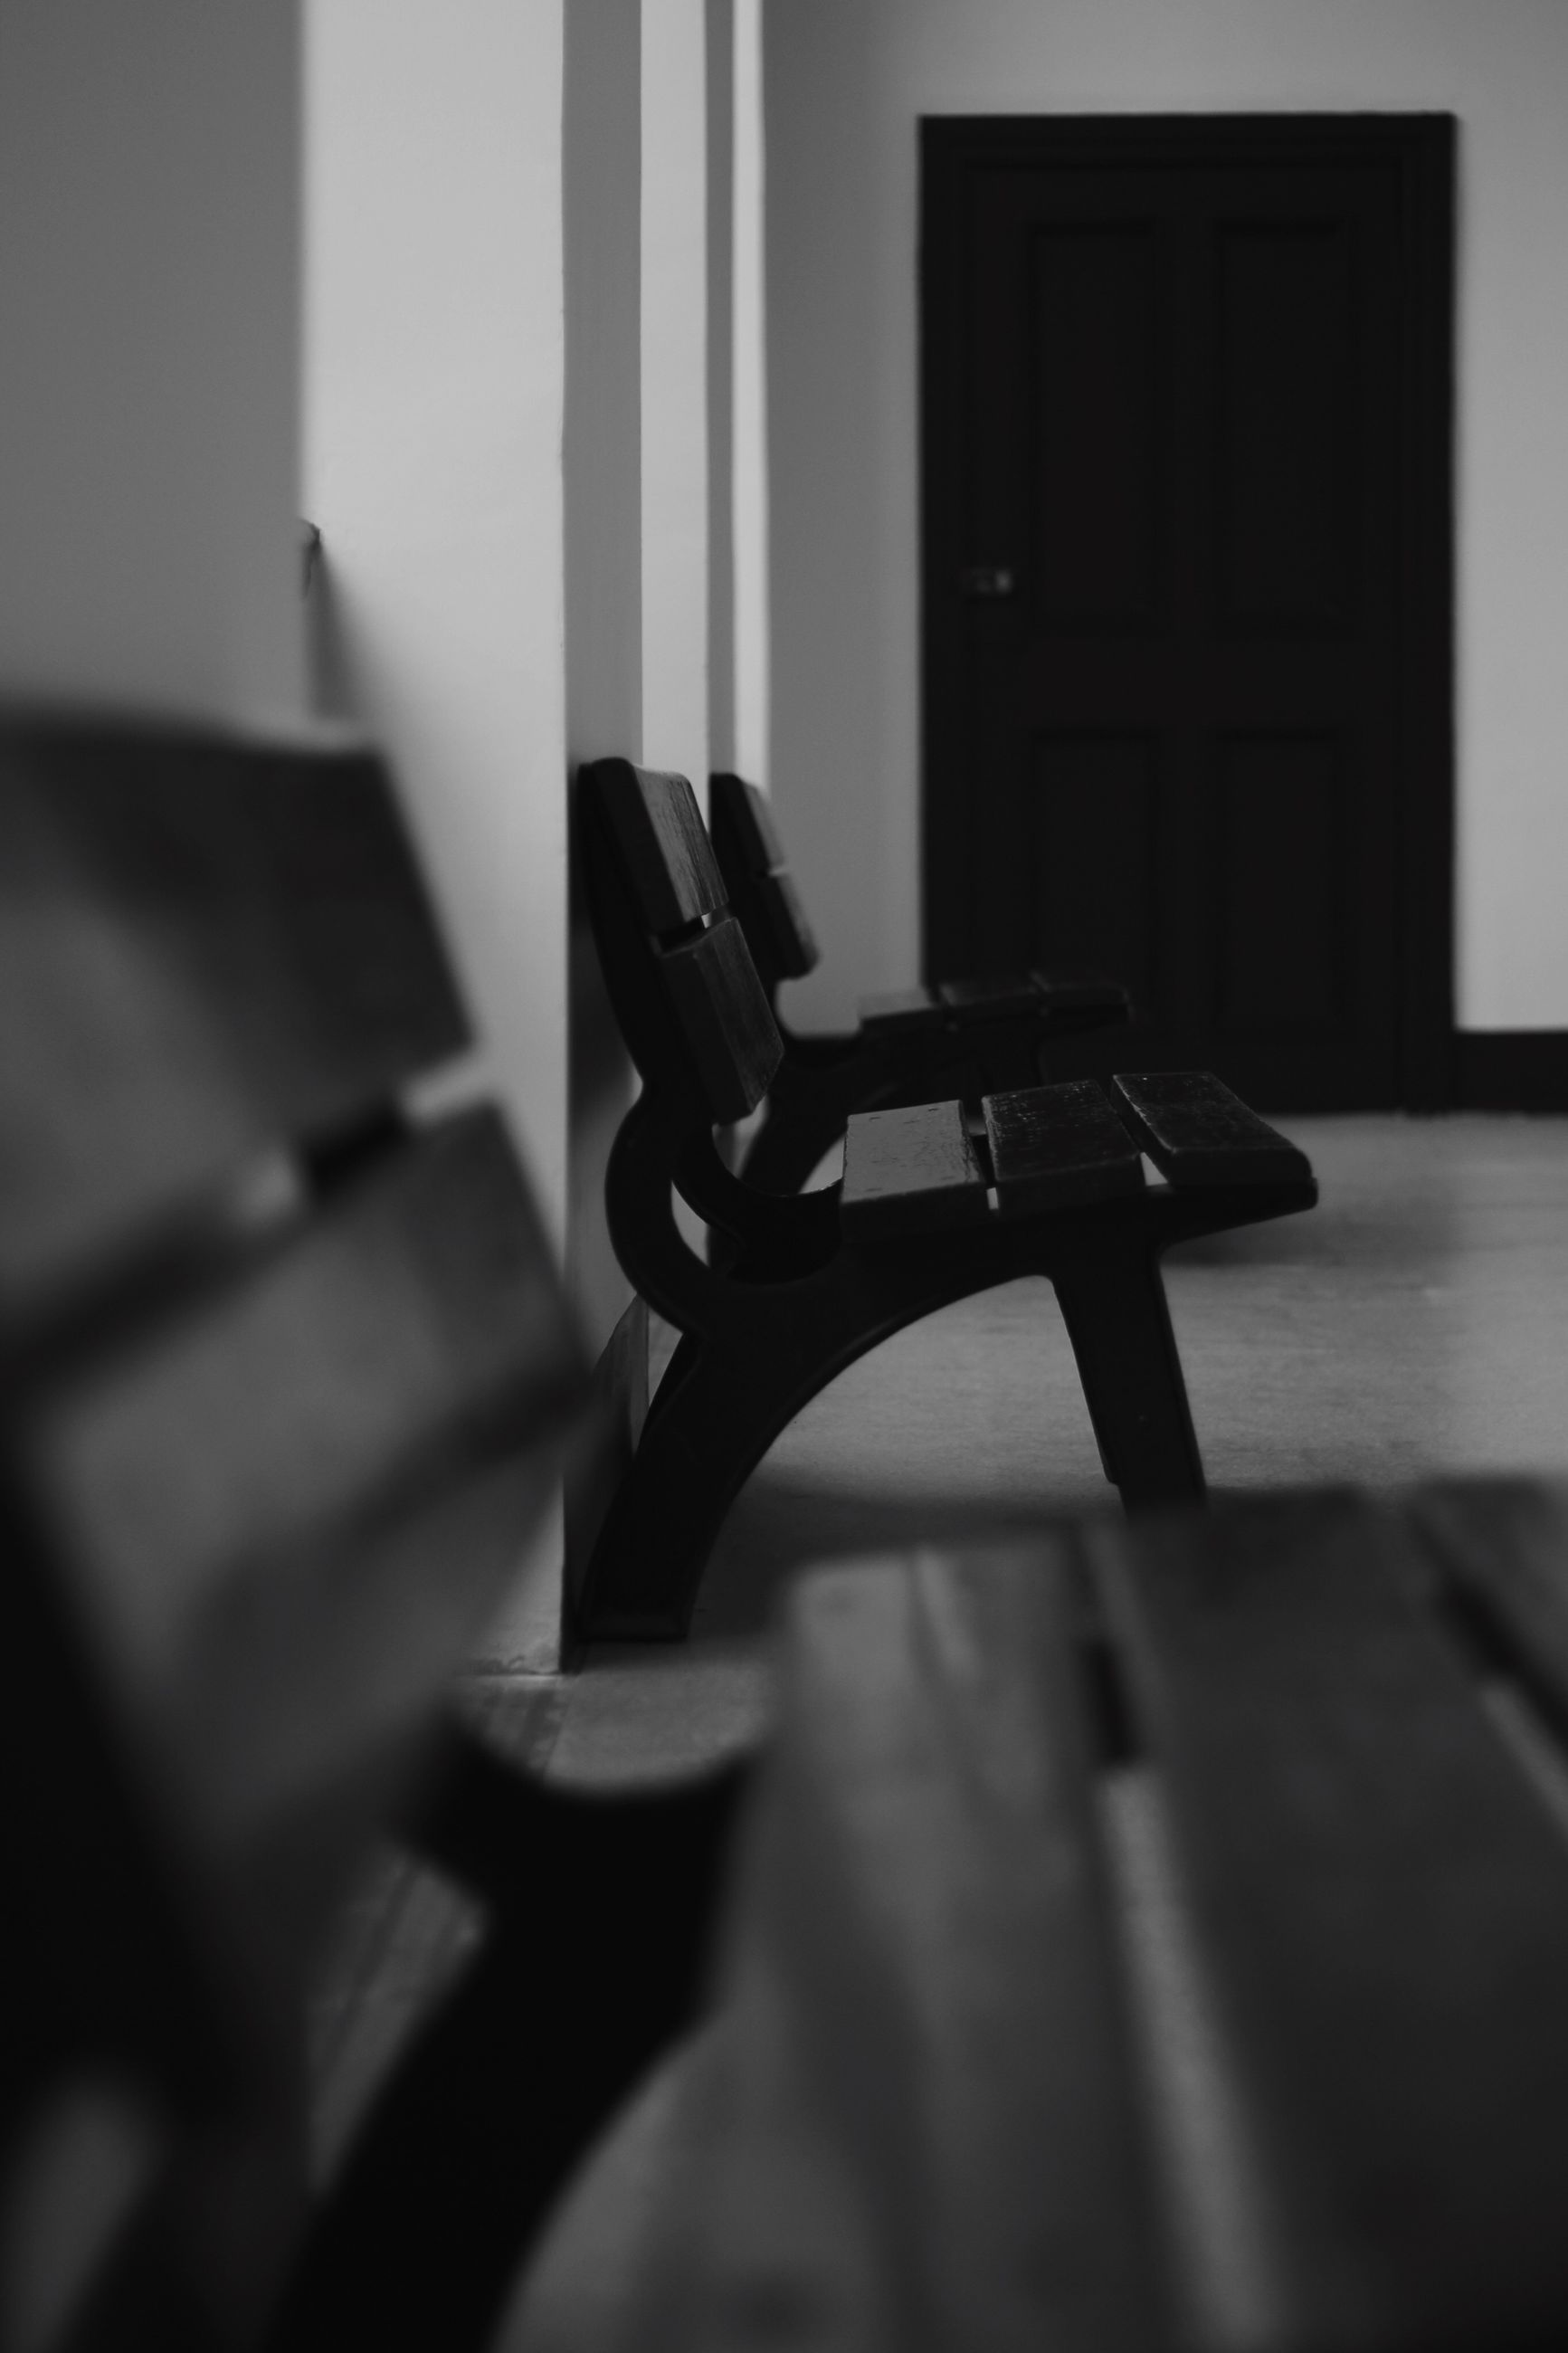 indoors, home interior, chair, table, absence, selective focus, empty, focus on foreground, furniture, close-up, still life, domestic room, shadow, no people, book, house, window, living room, architecture, day